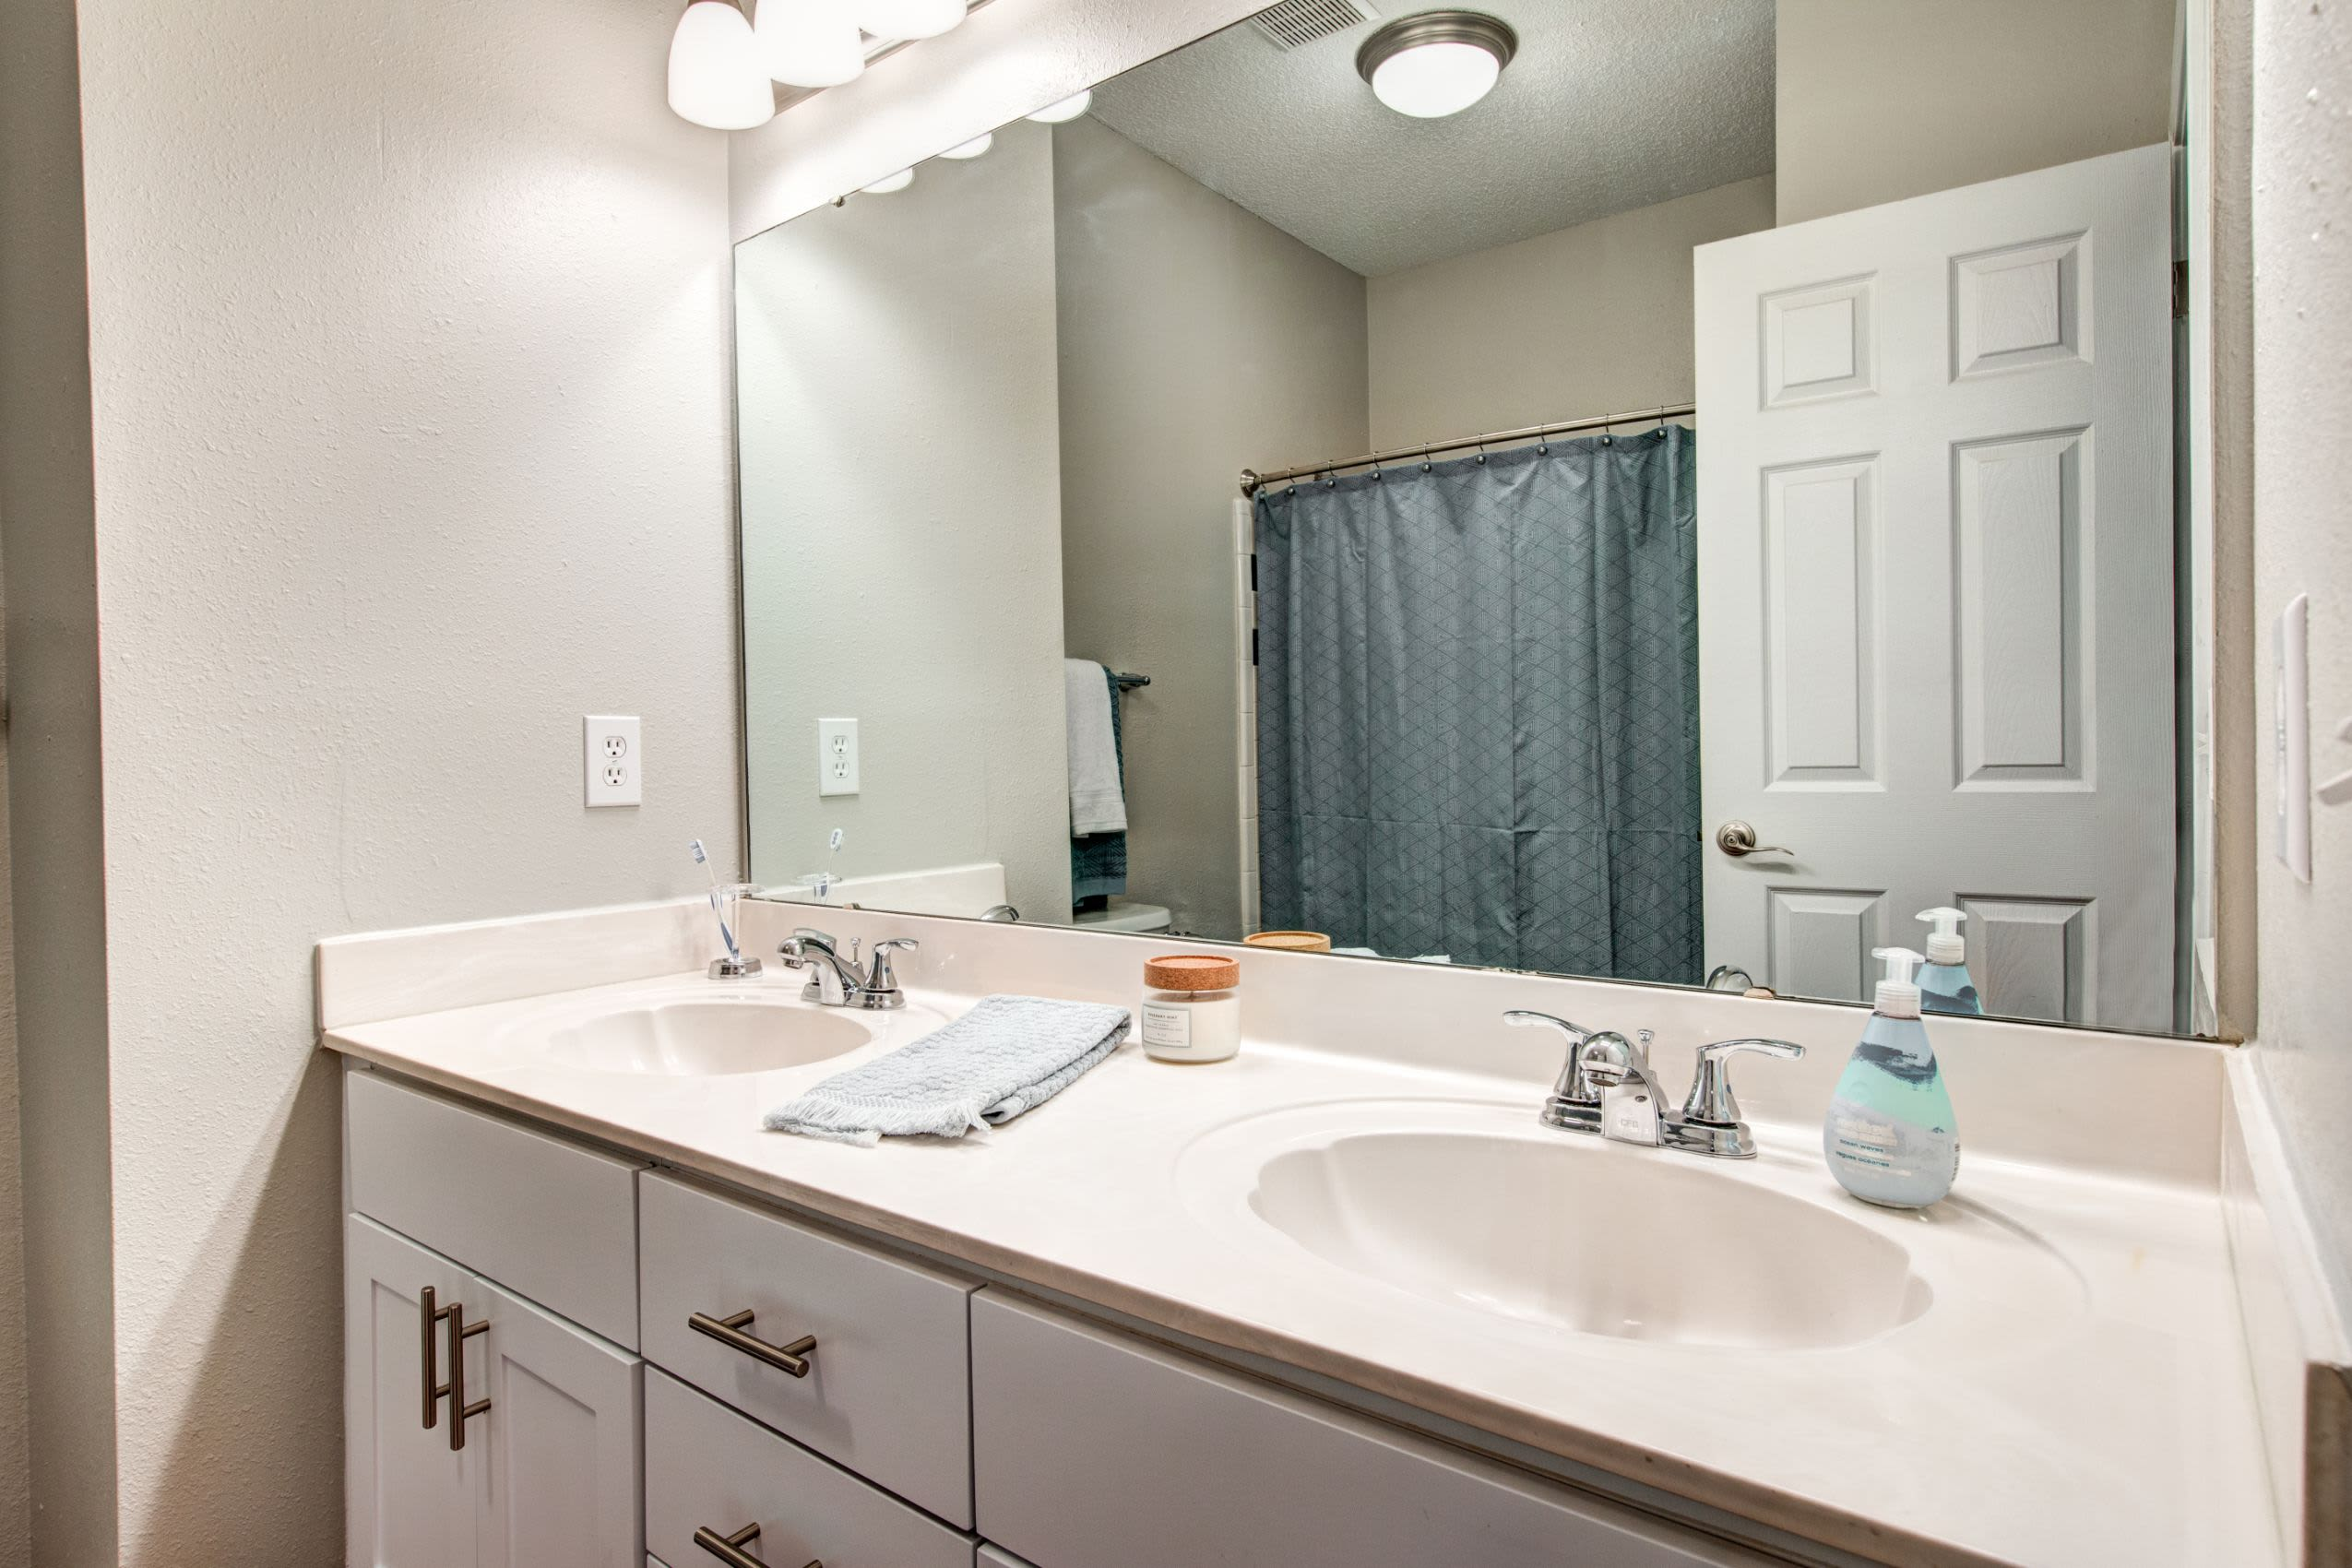 Bathroom with white counters and double sinks at Marquis on Edwards Mill in Raleigh, North Carolina